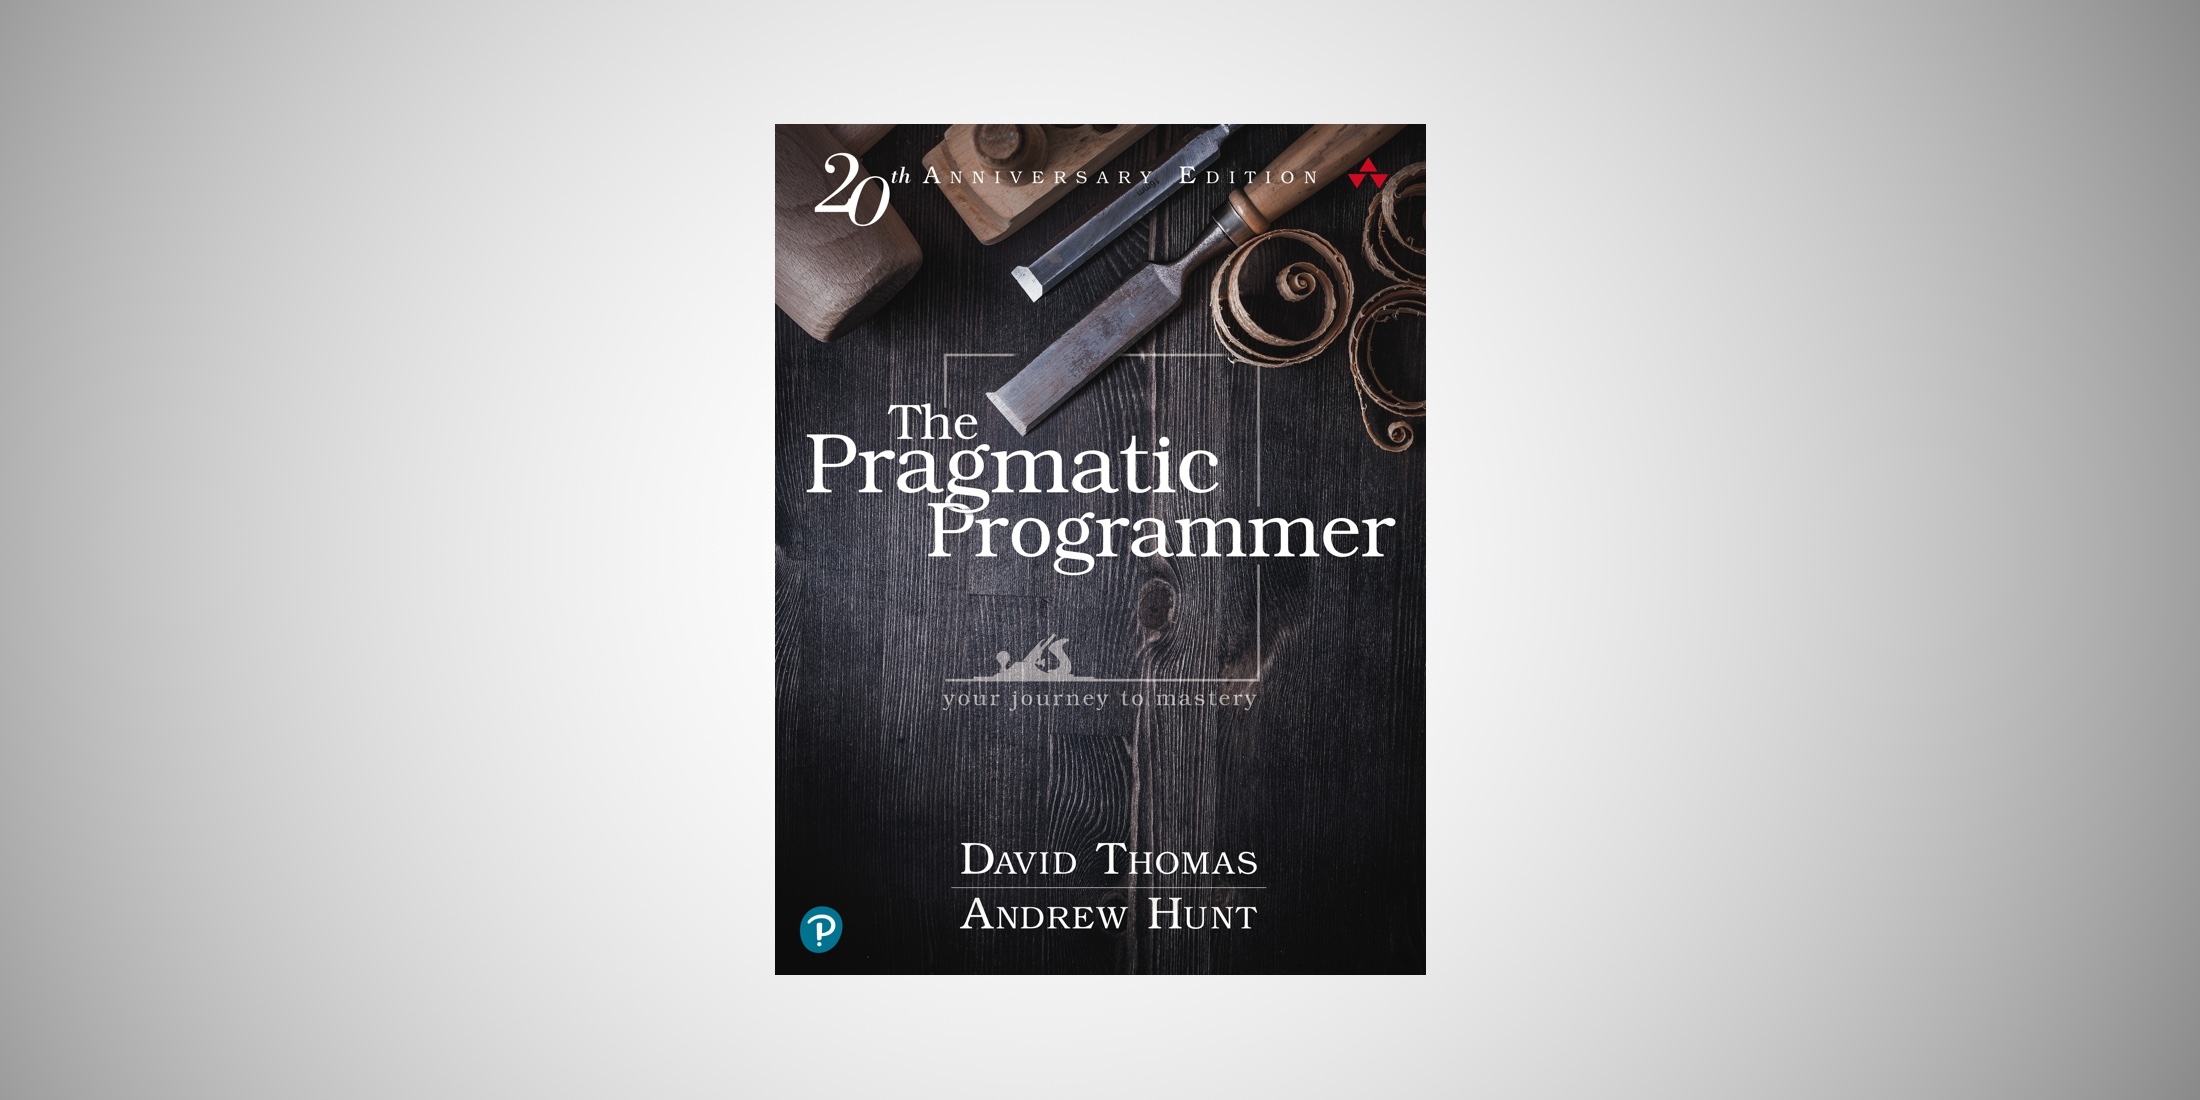 The Pragmatic Programmer 20th Anniversary Edition